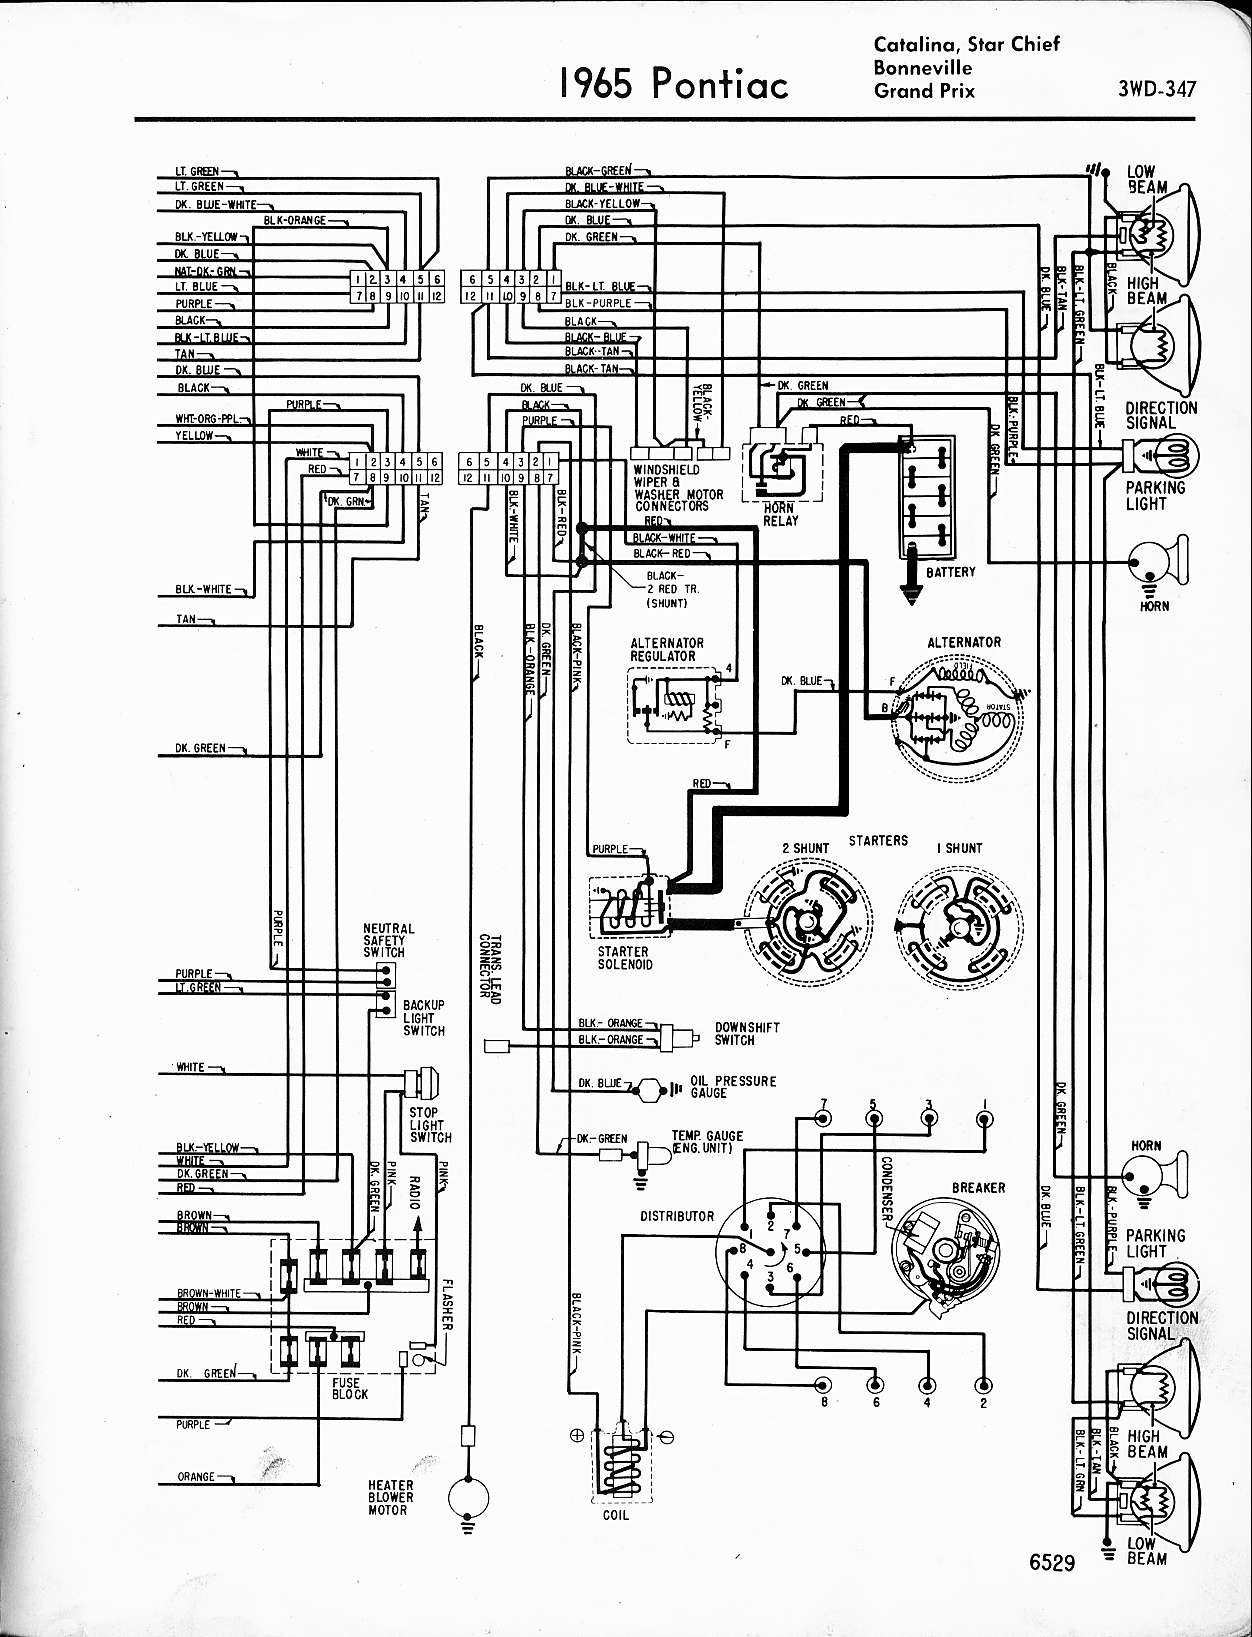 MWire5765 347 wallace racing wiring diagrams  at suagrazia.org